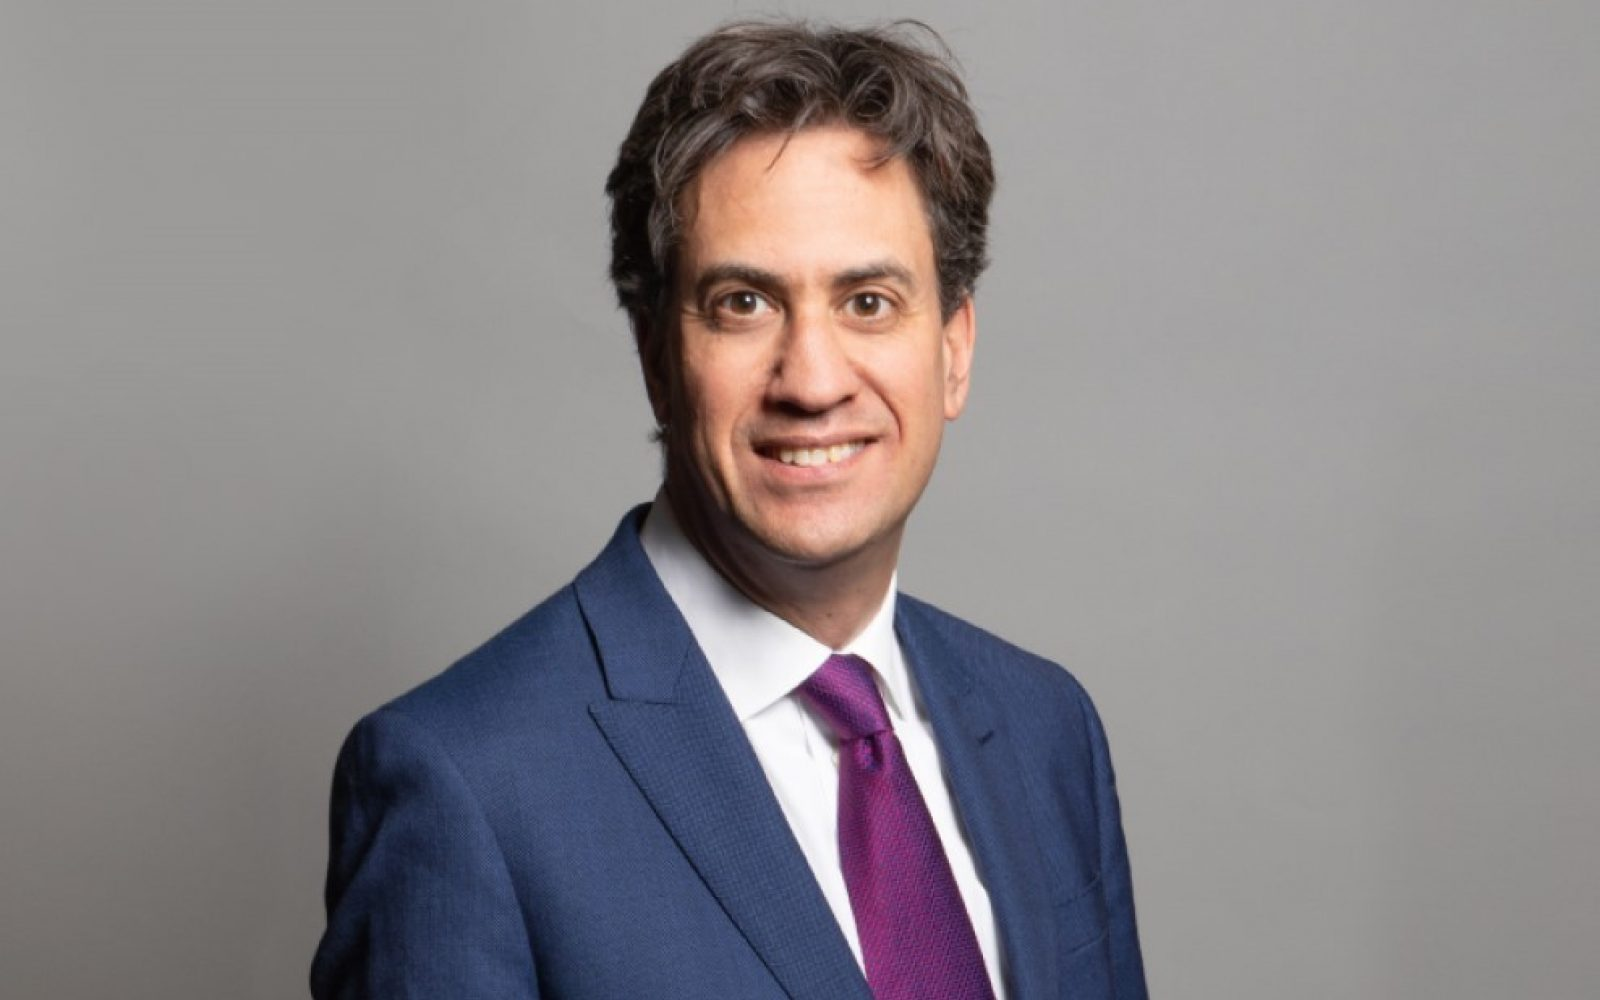 The proposals were unveiled in a speech given by shadow energy secretary Ed Miliband this morning. Image: Parliament.uk.